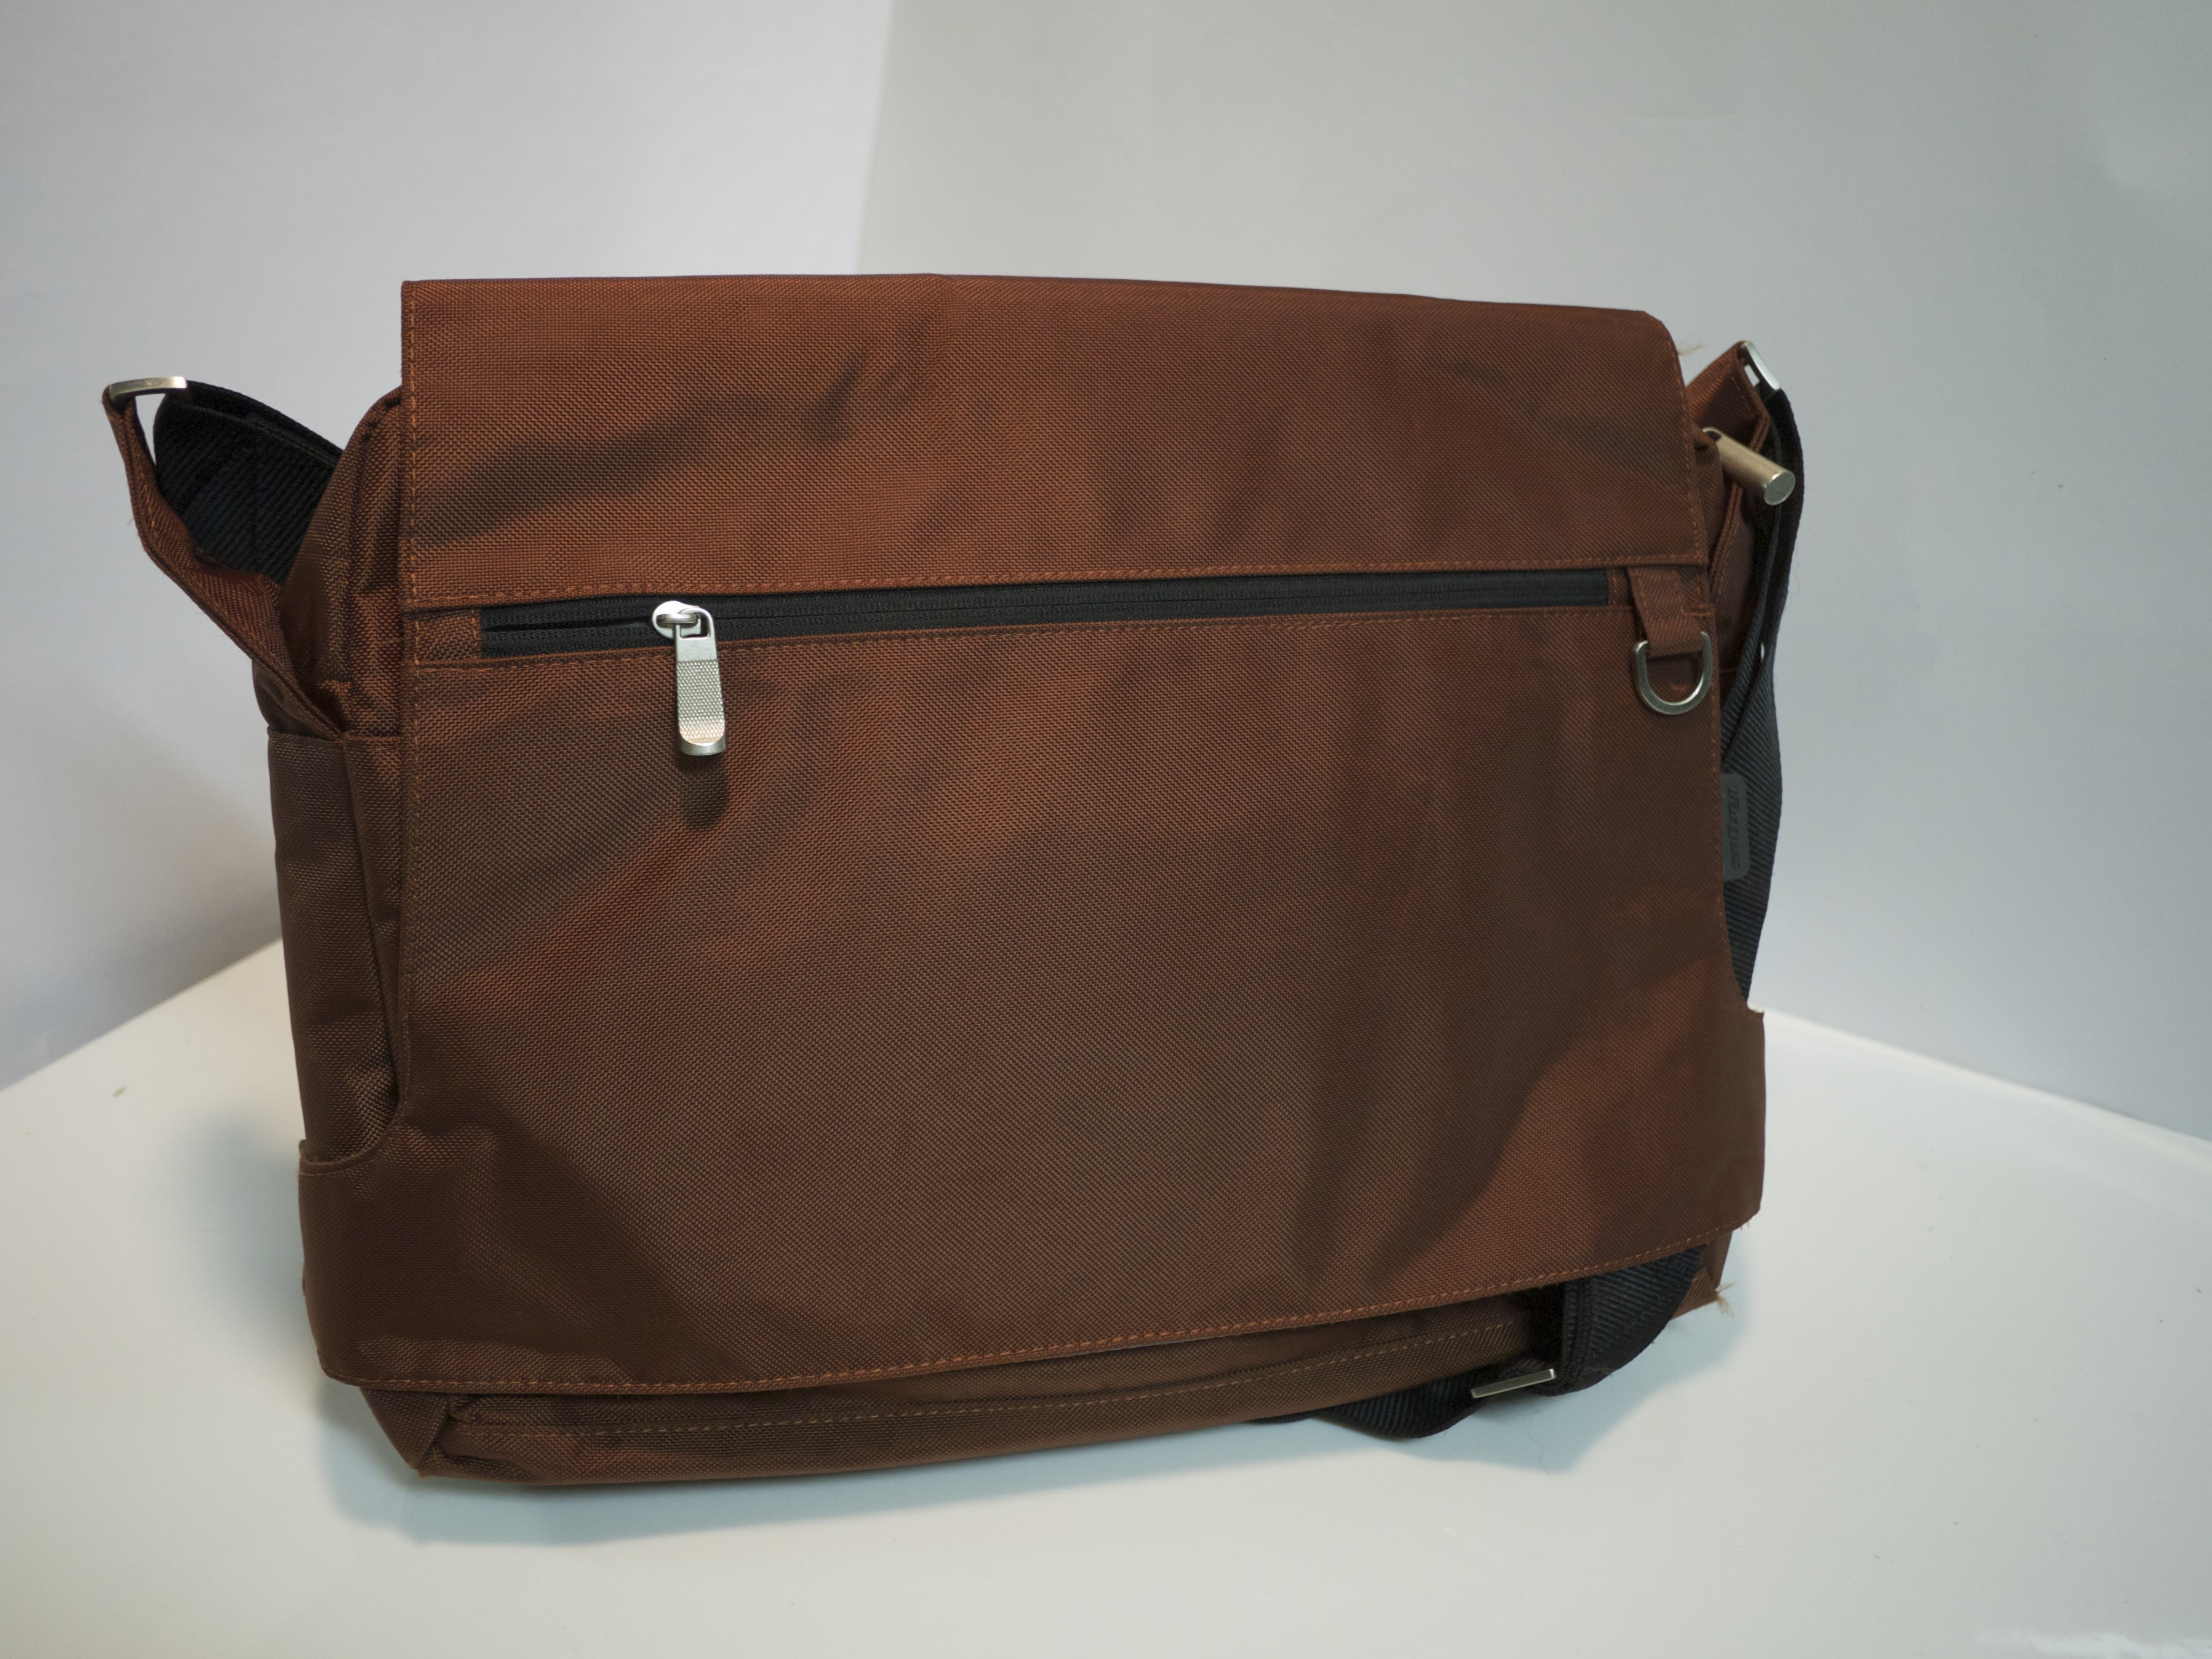 Toasted red laptop bag